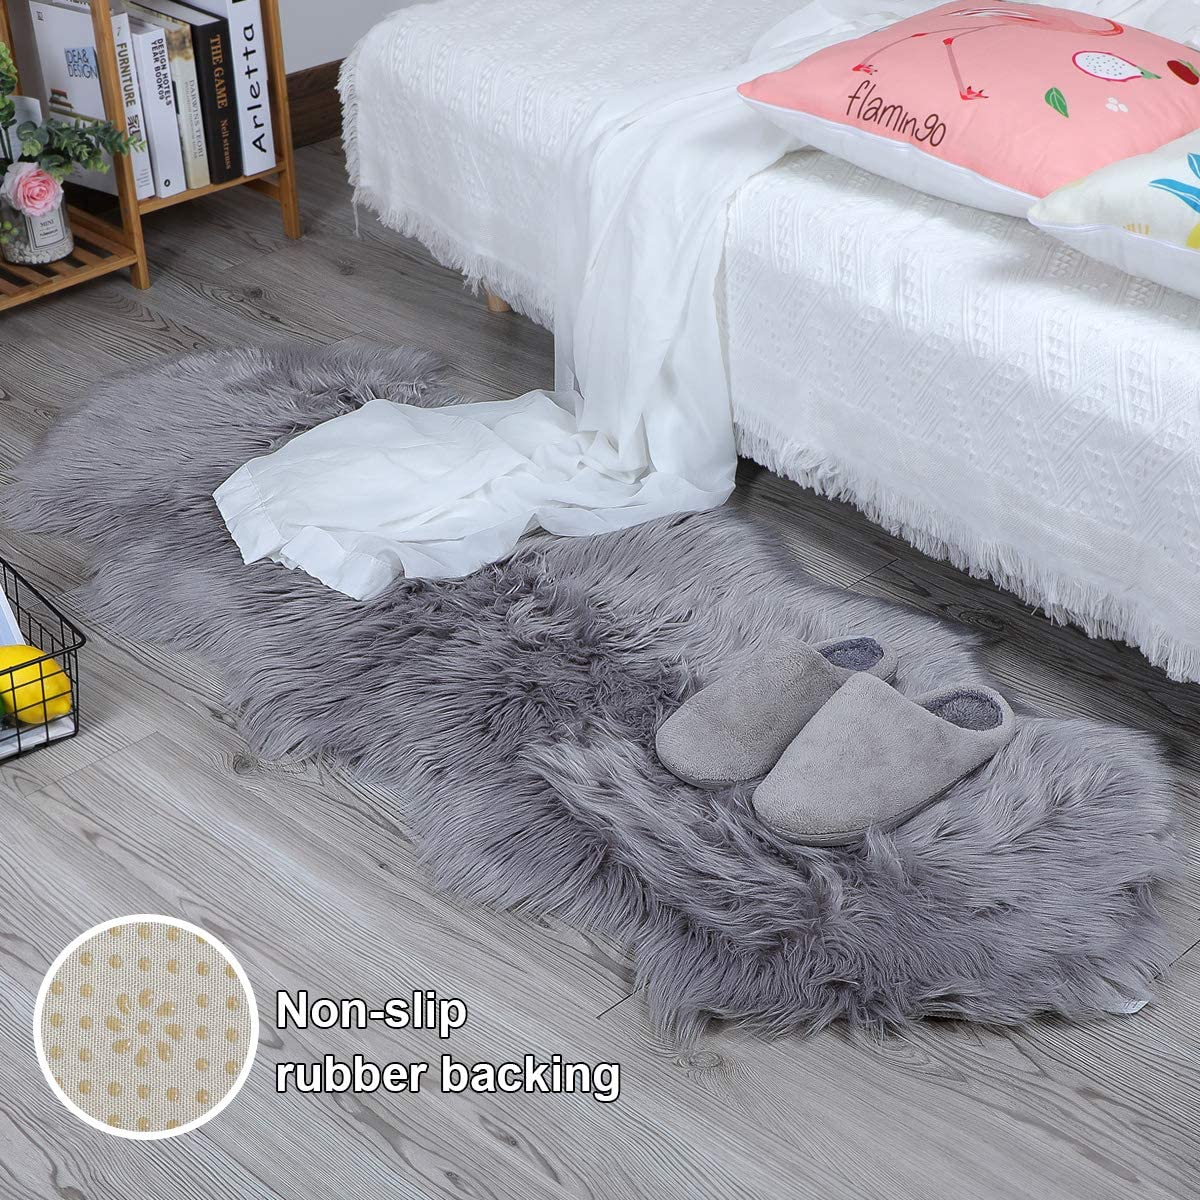 HLZHOU New 2019 Upgraded Non-Slip Faux Fur Rug, Fluffy Rug, Shaggy Rugs,Faux Sheepskin Rugs Floor Carpet for Bedrooms Living Room Kids Rooms Decor 2×5.3 Feet 60 x 160cm , Double Shape Gray